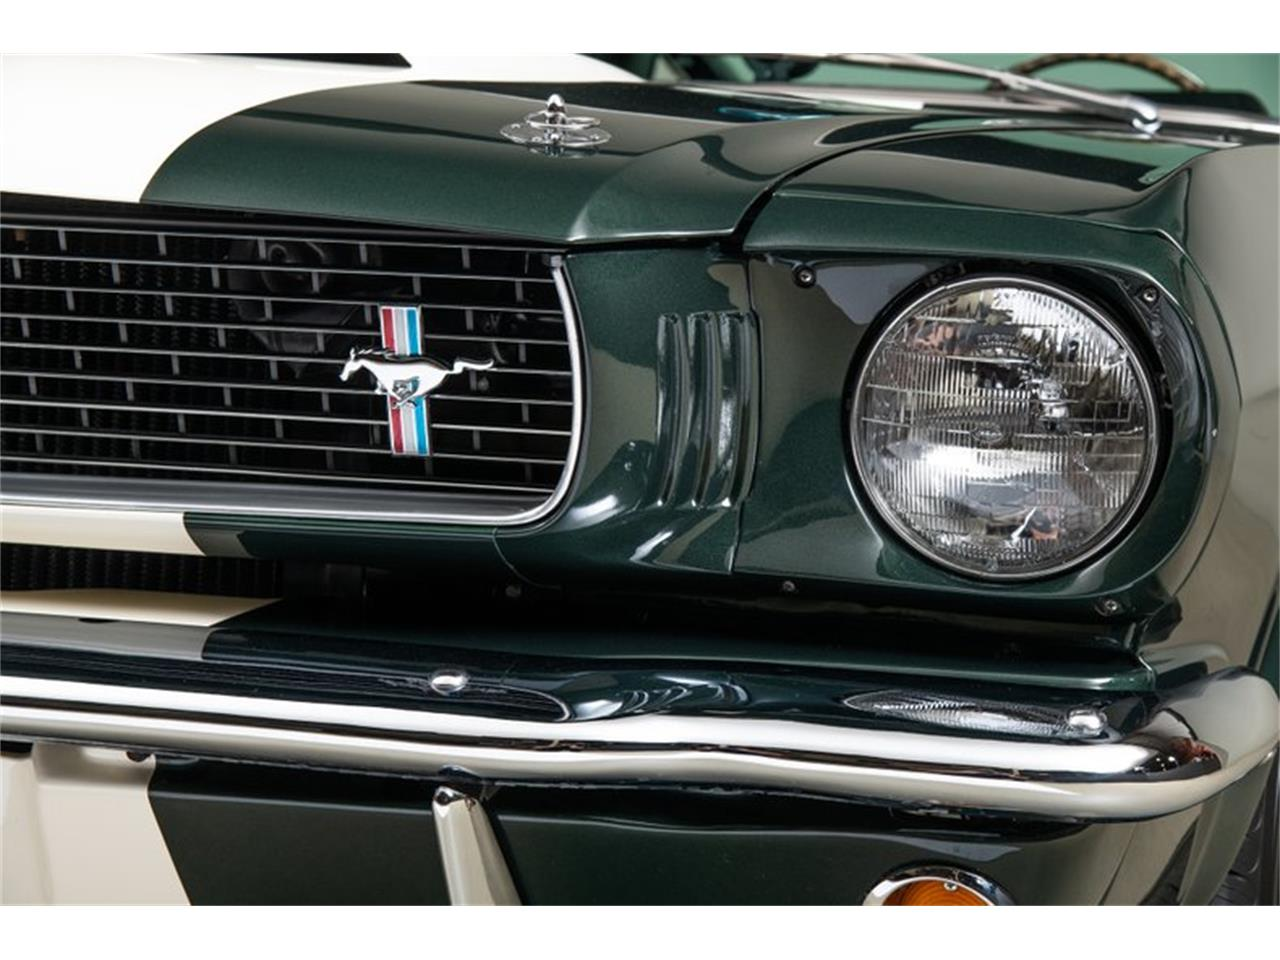 Large Picture of Classic 1966 GT350 located in Scotts Valley California Auction Vehicle - QKPF